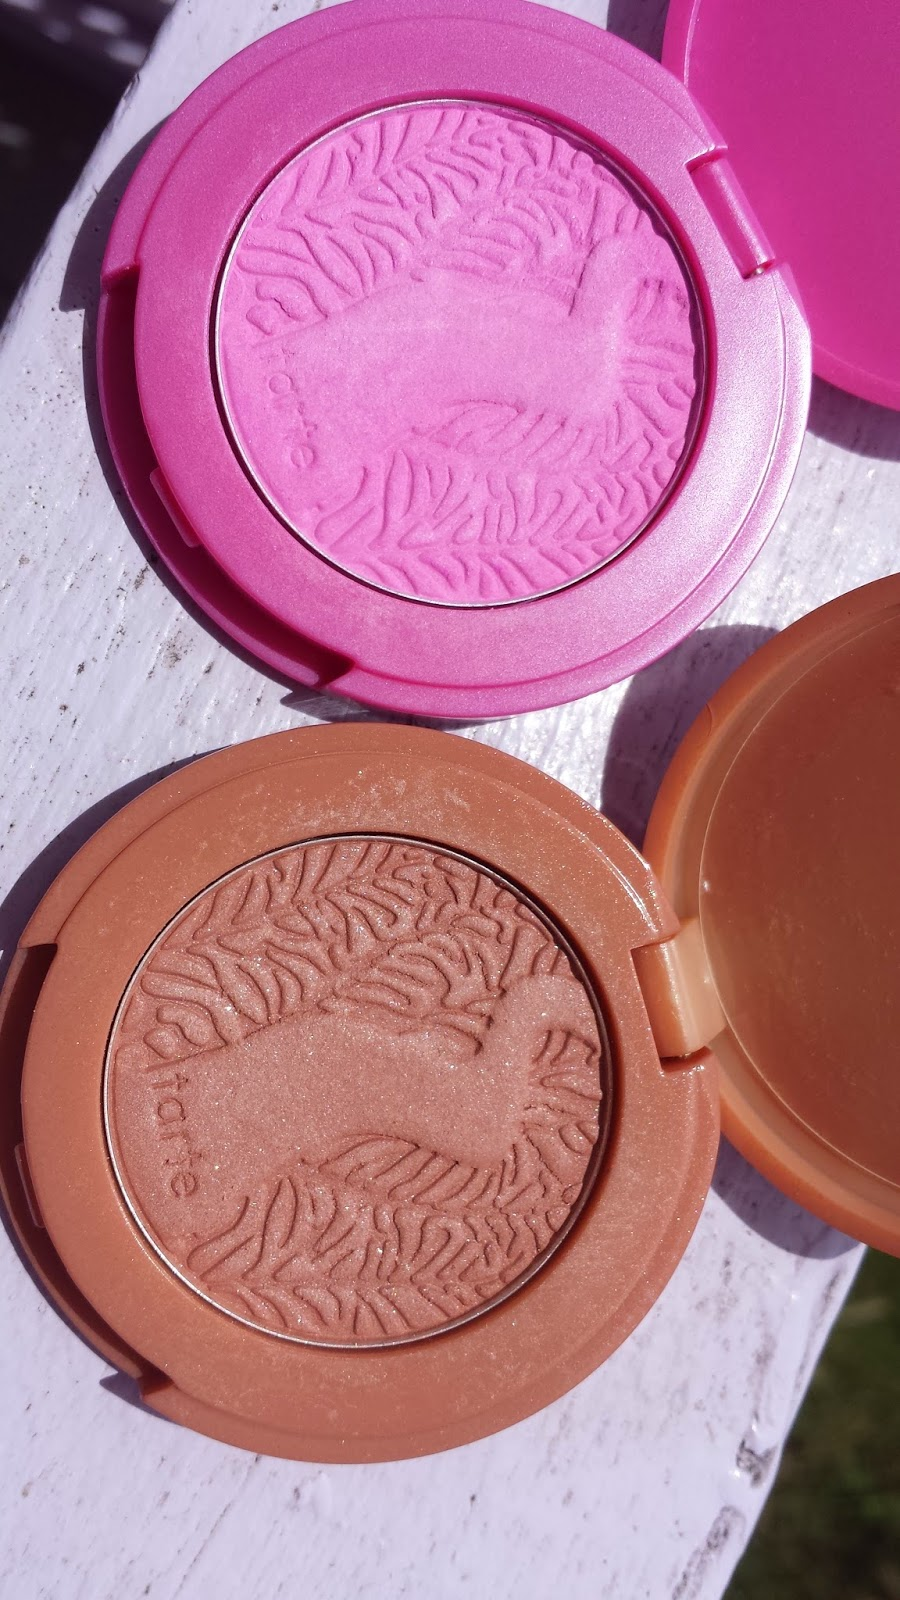 Tarte Amazonian Clay blushes 'Fantastic' and 'Stellar' - www.modenmakeup.com